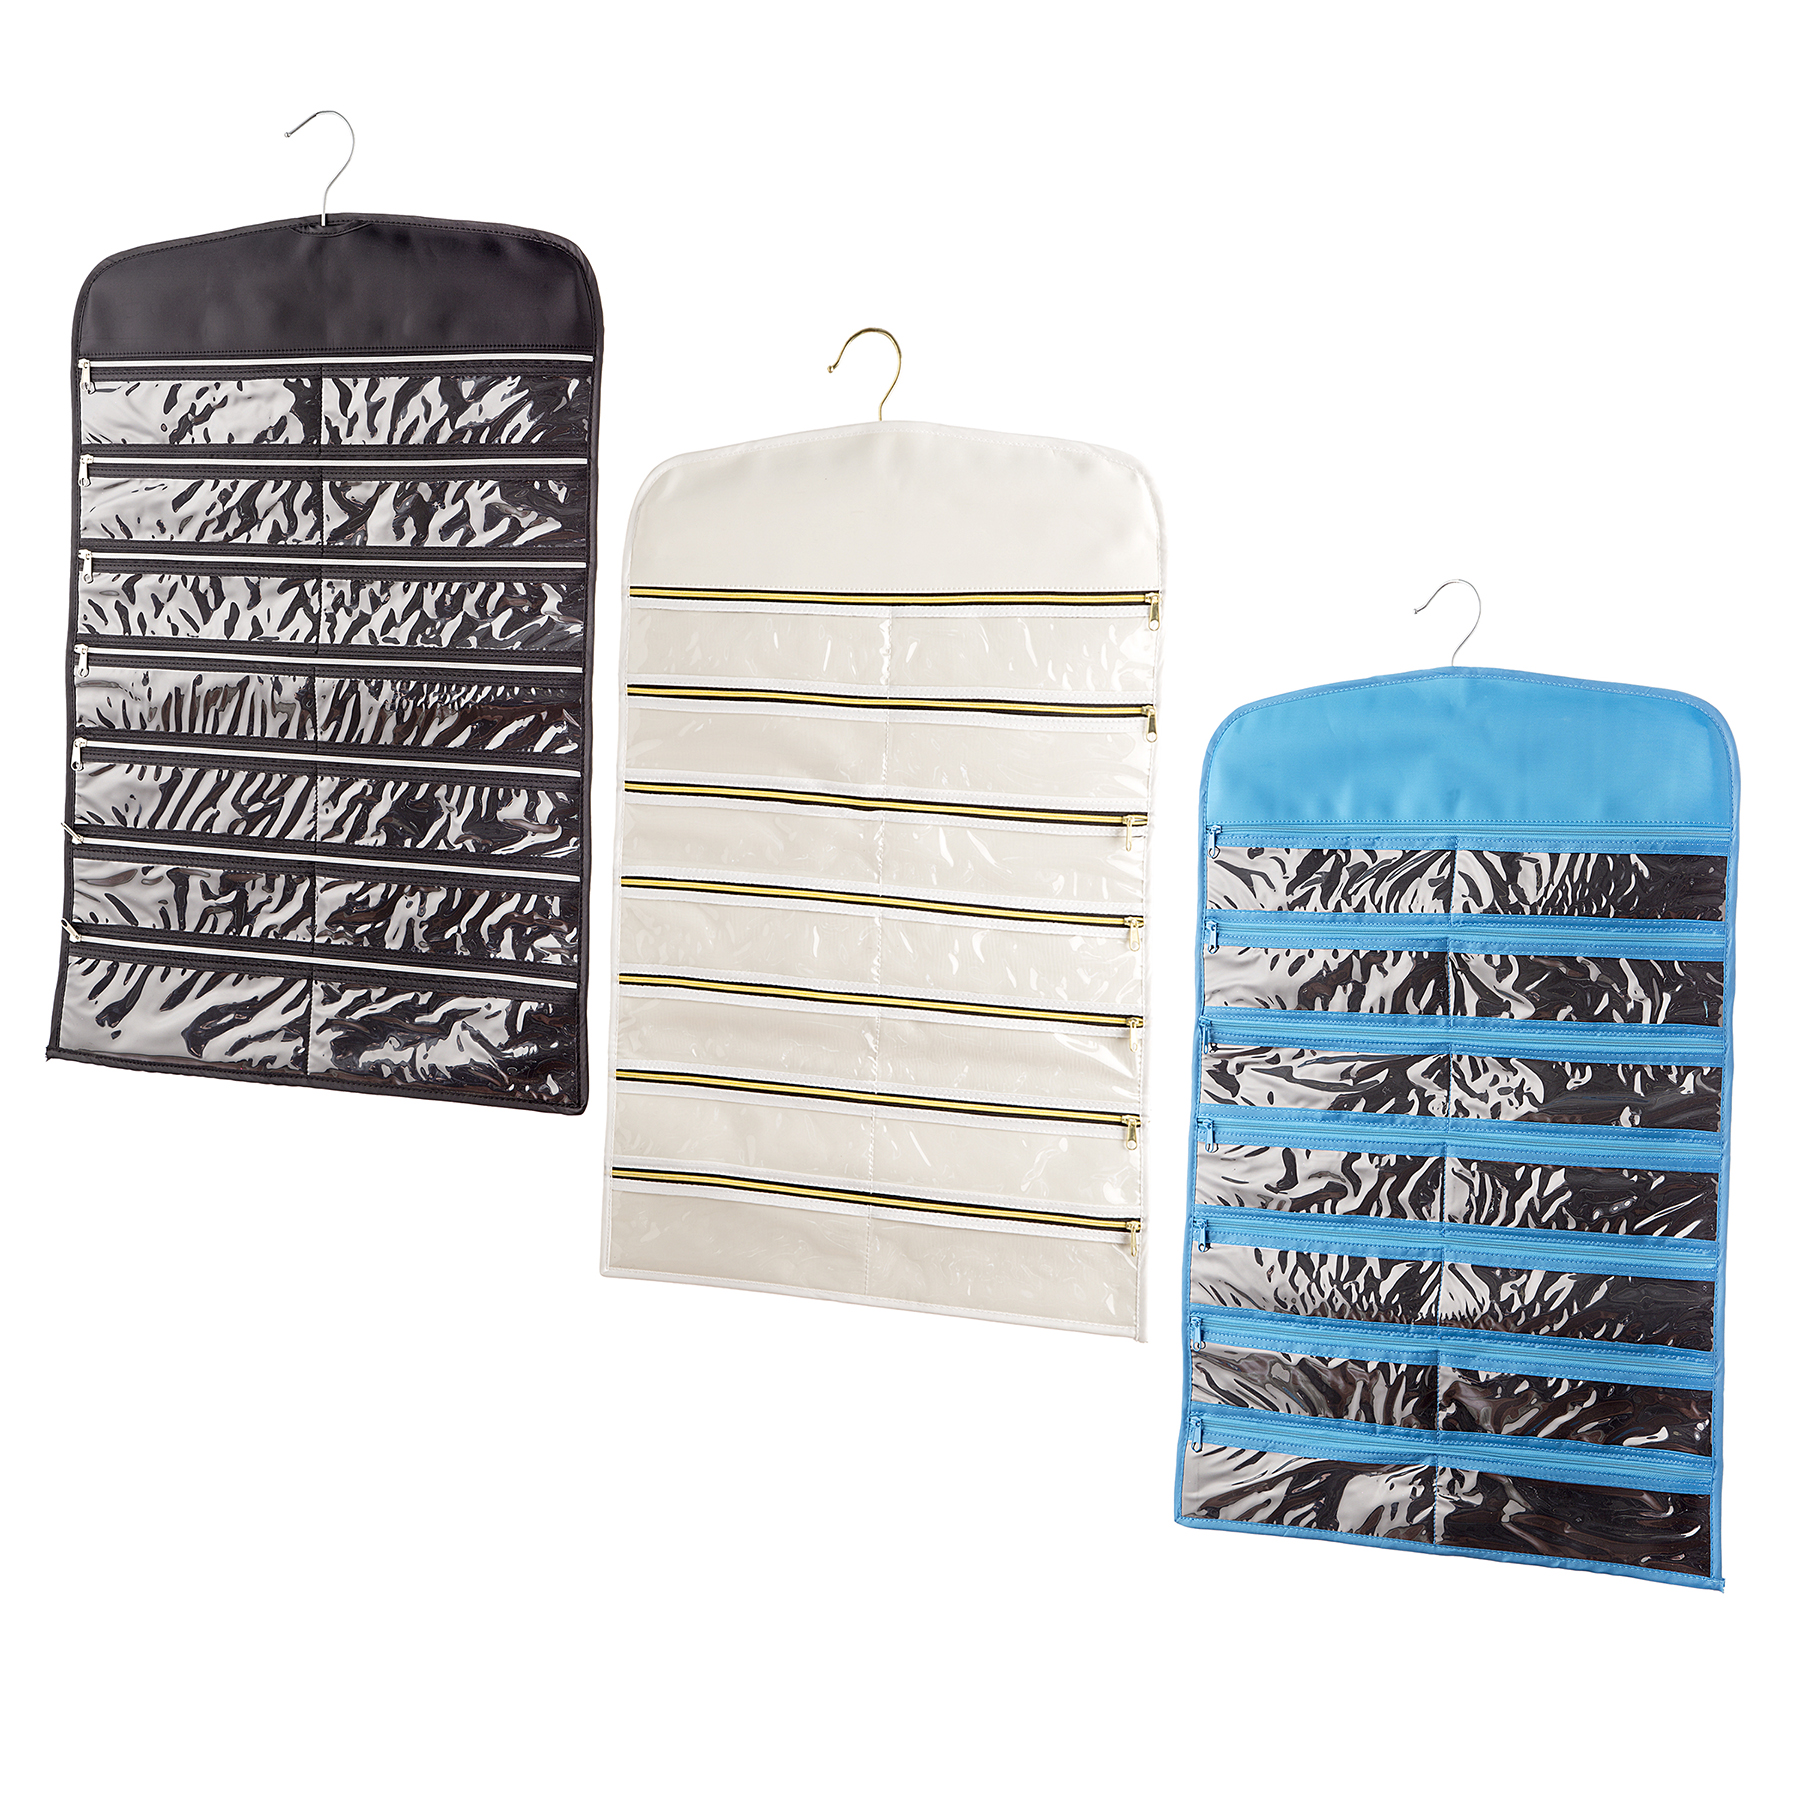 Buy the Assorted Zippered Jewelry Organizer By Bead Landing at